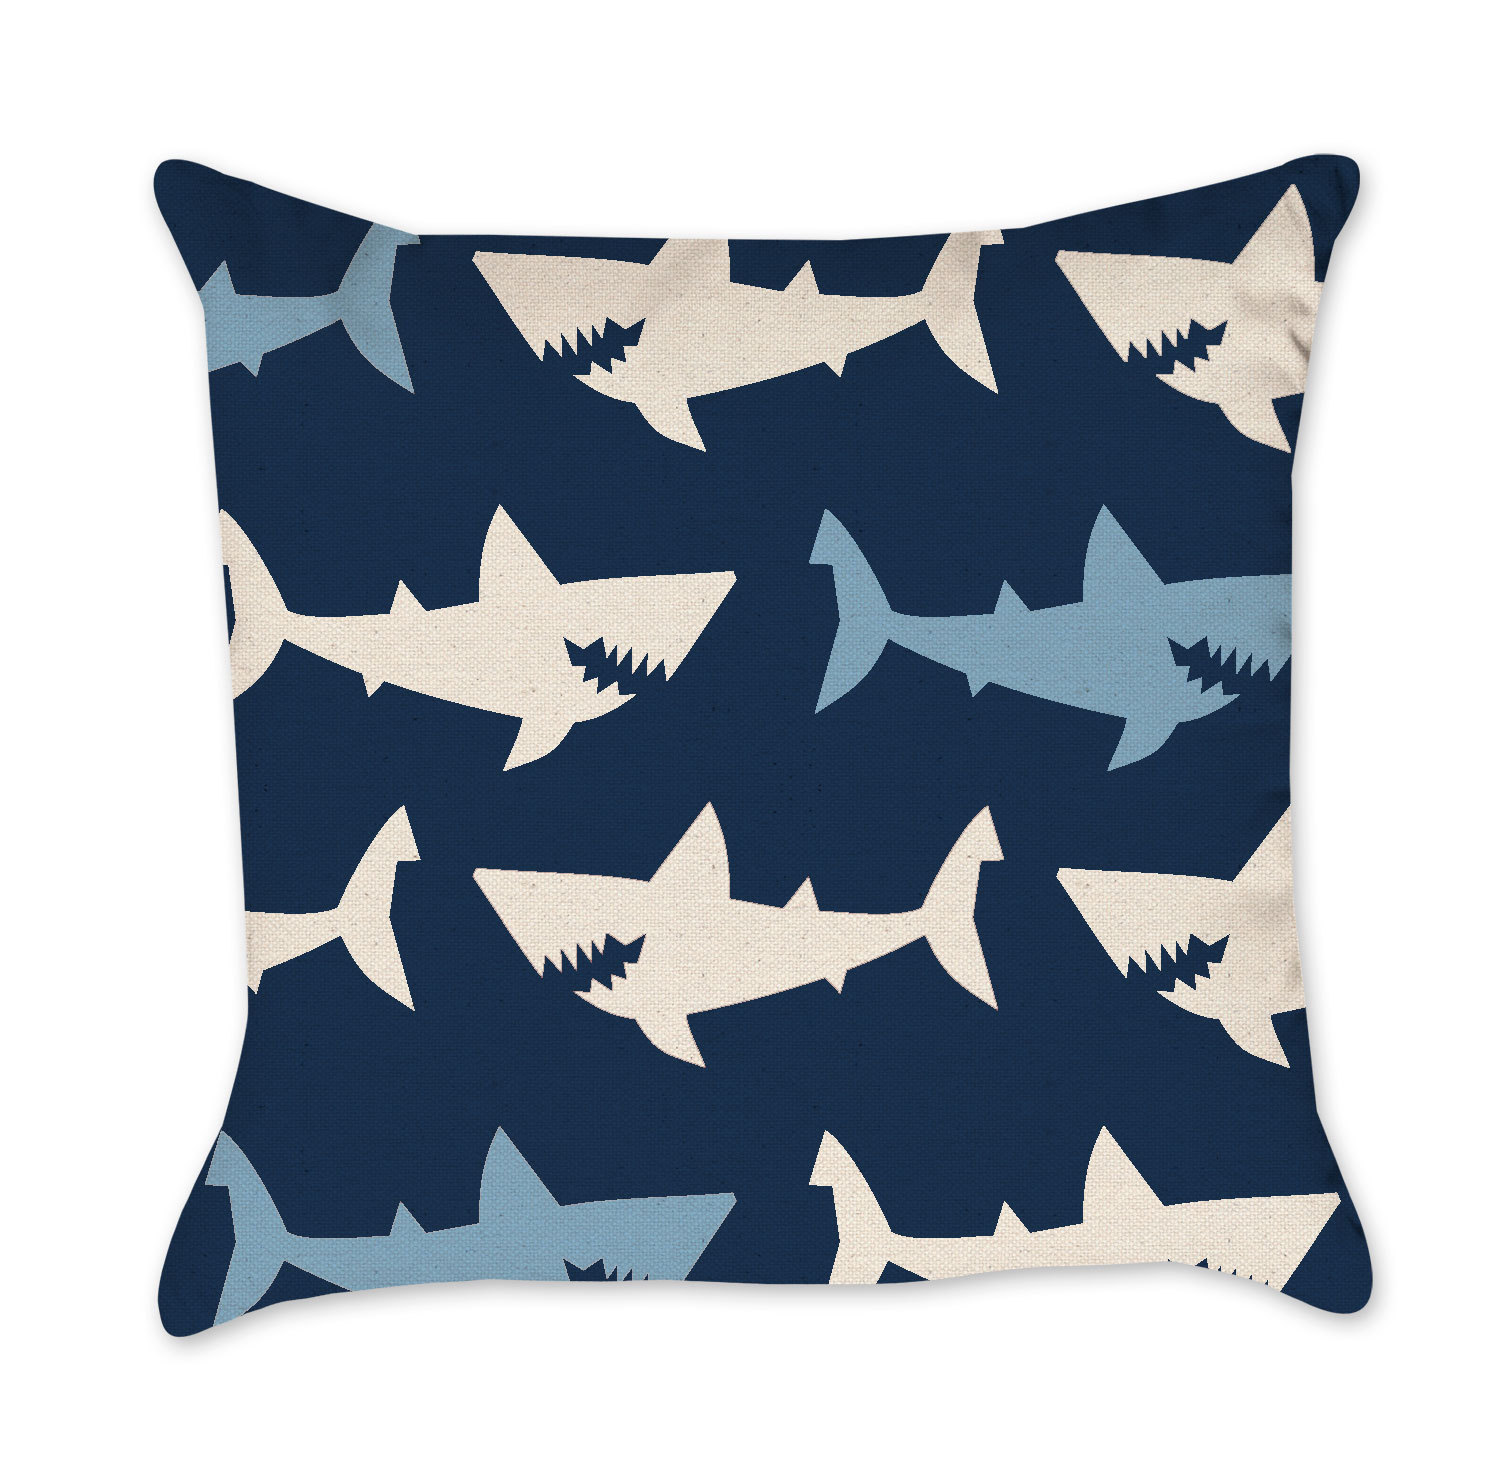 Shark Pillow That Eats You kid's pillows- project cottage